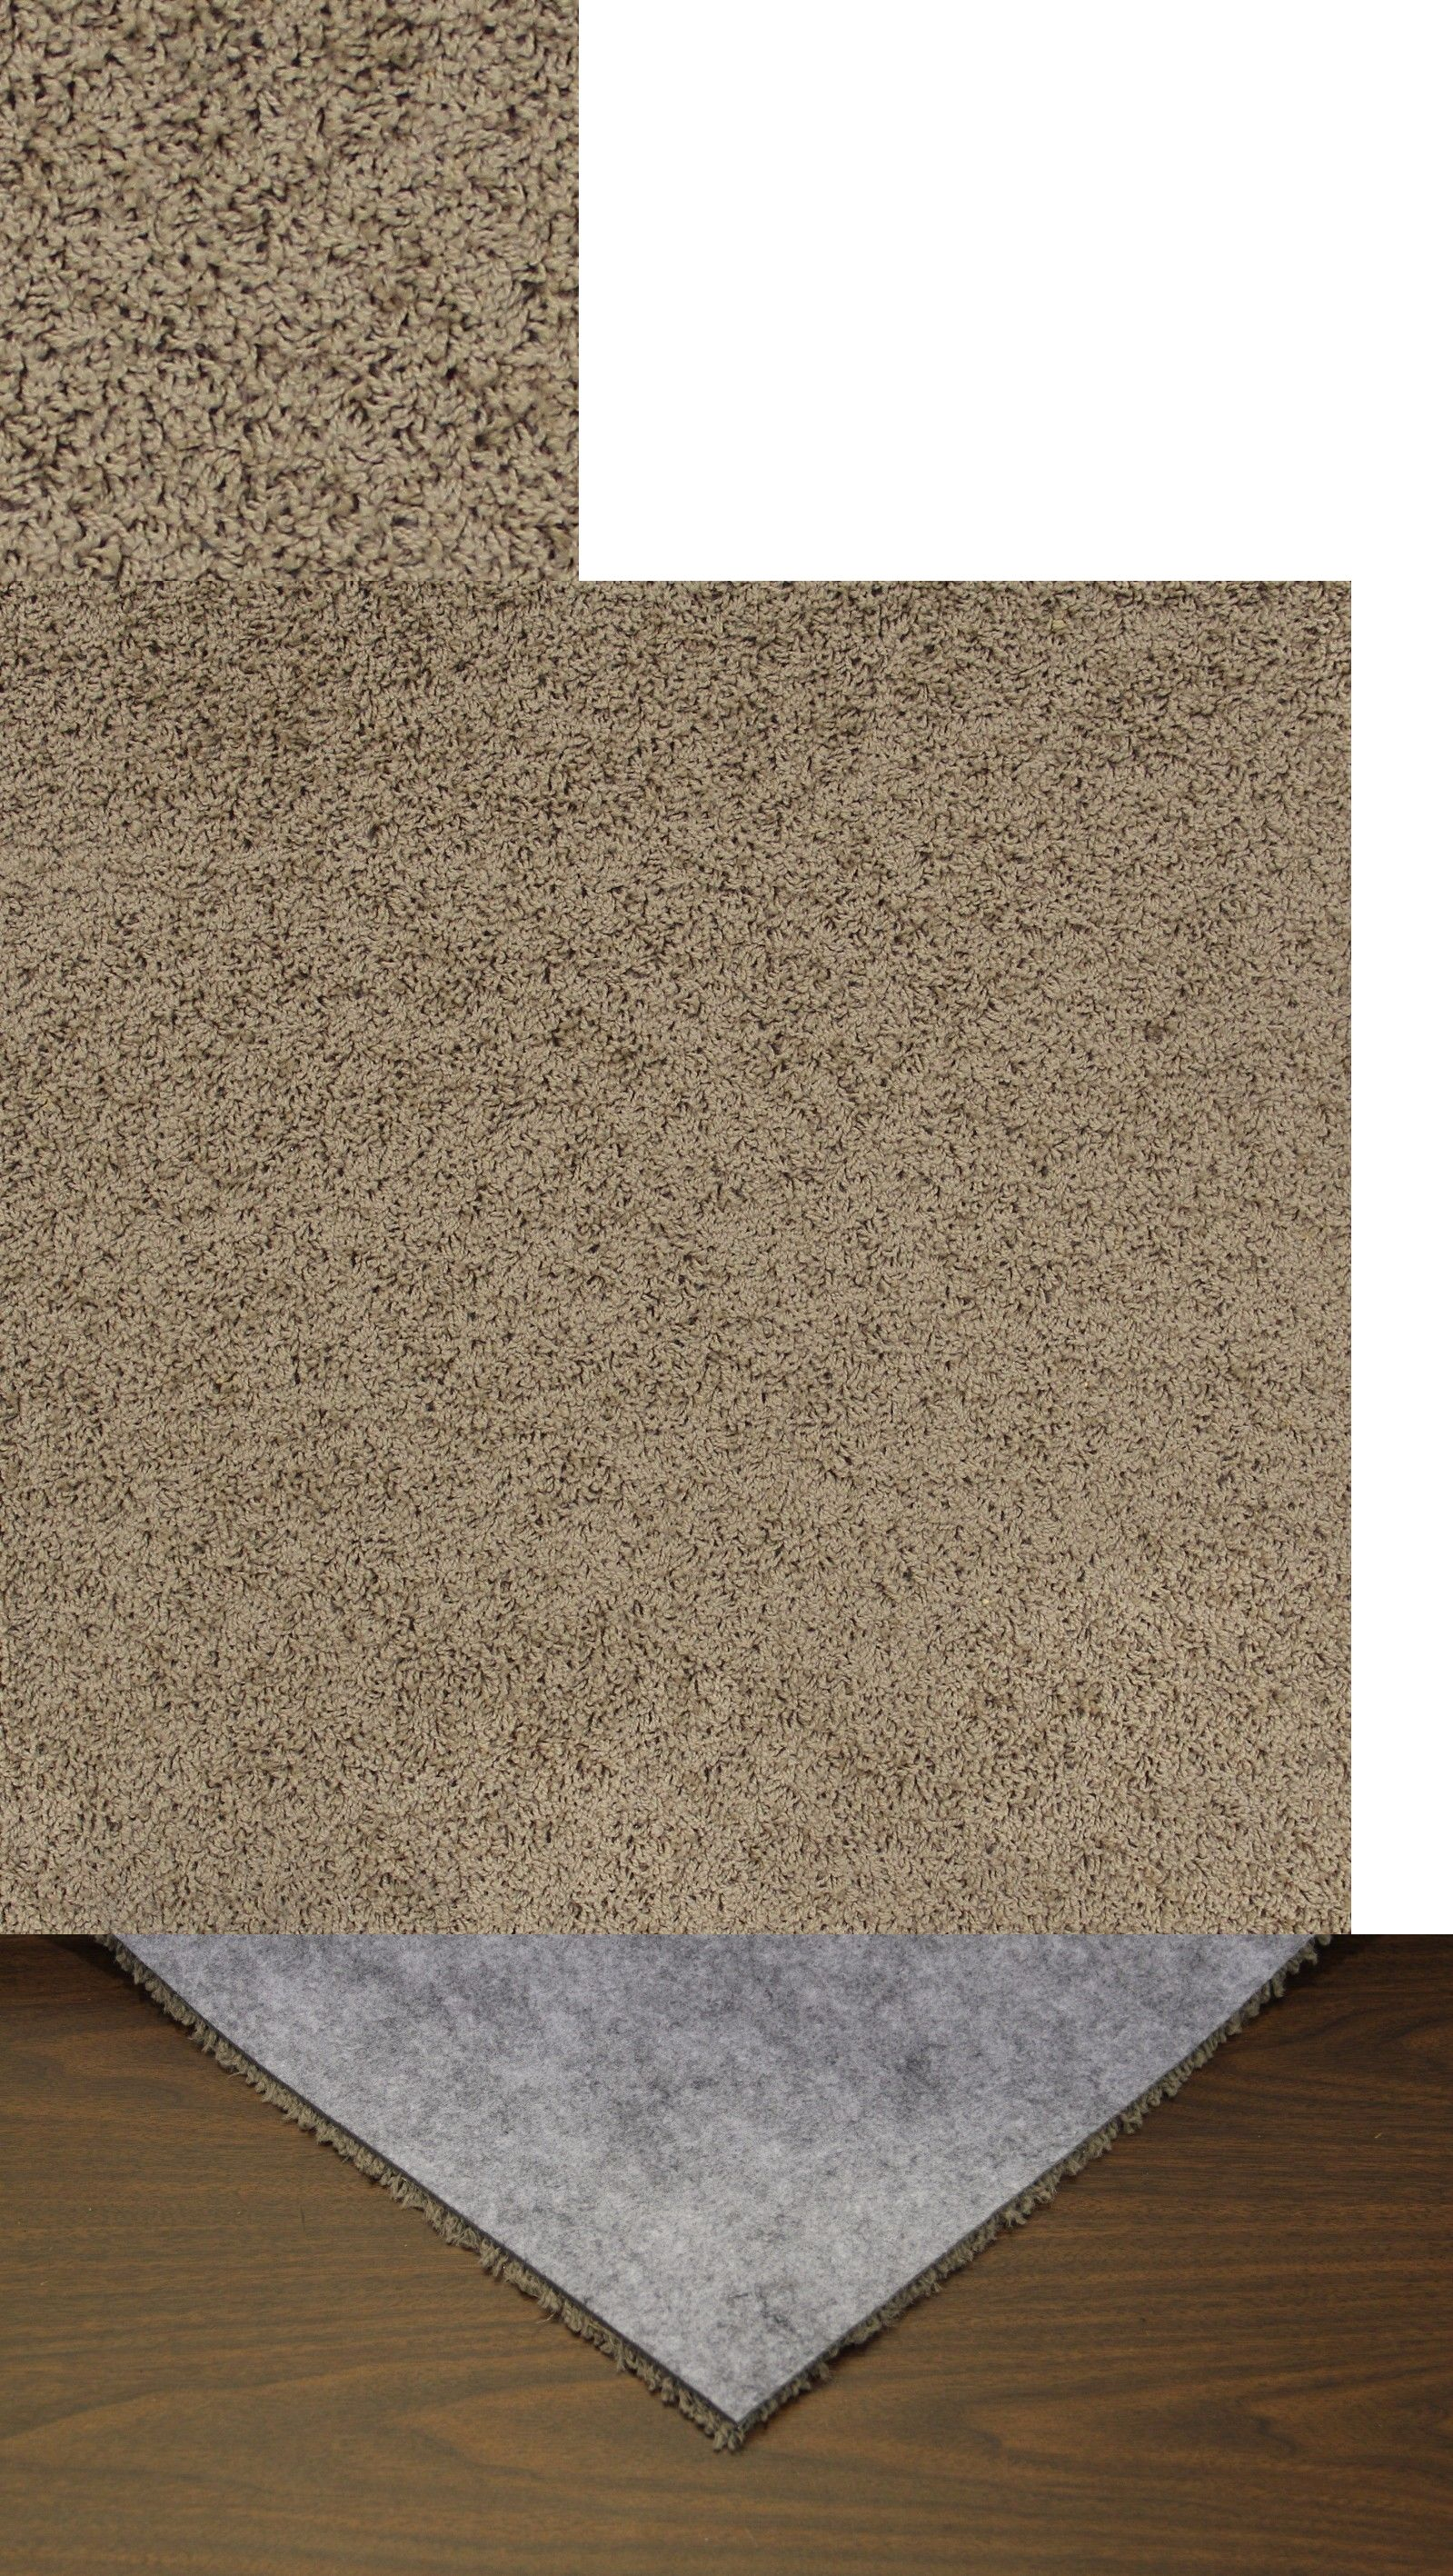 Carpet Tiles 136820 Soft Step Self Stick 24 X Mesa It Now Only 69 5 On Ebay